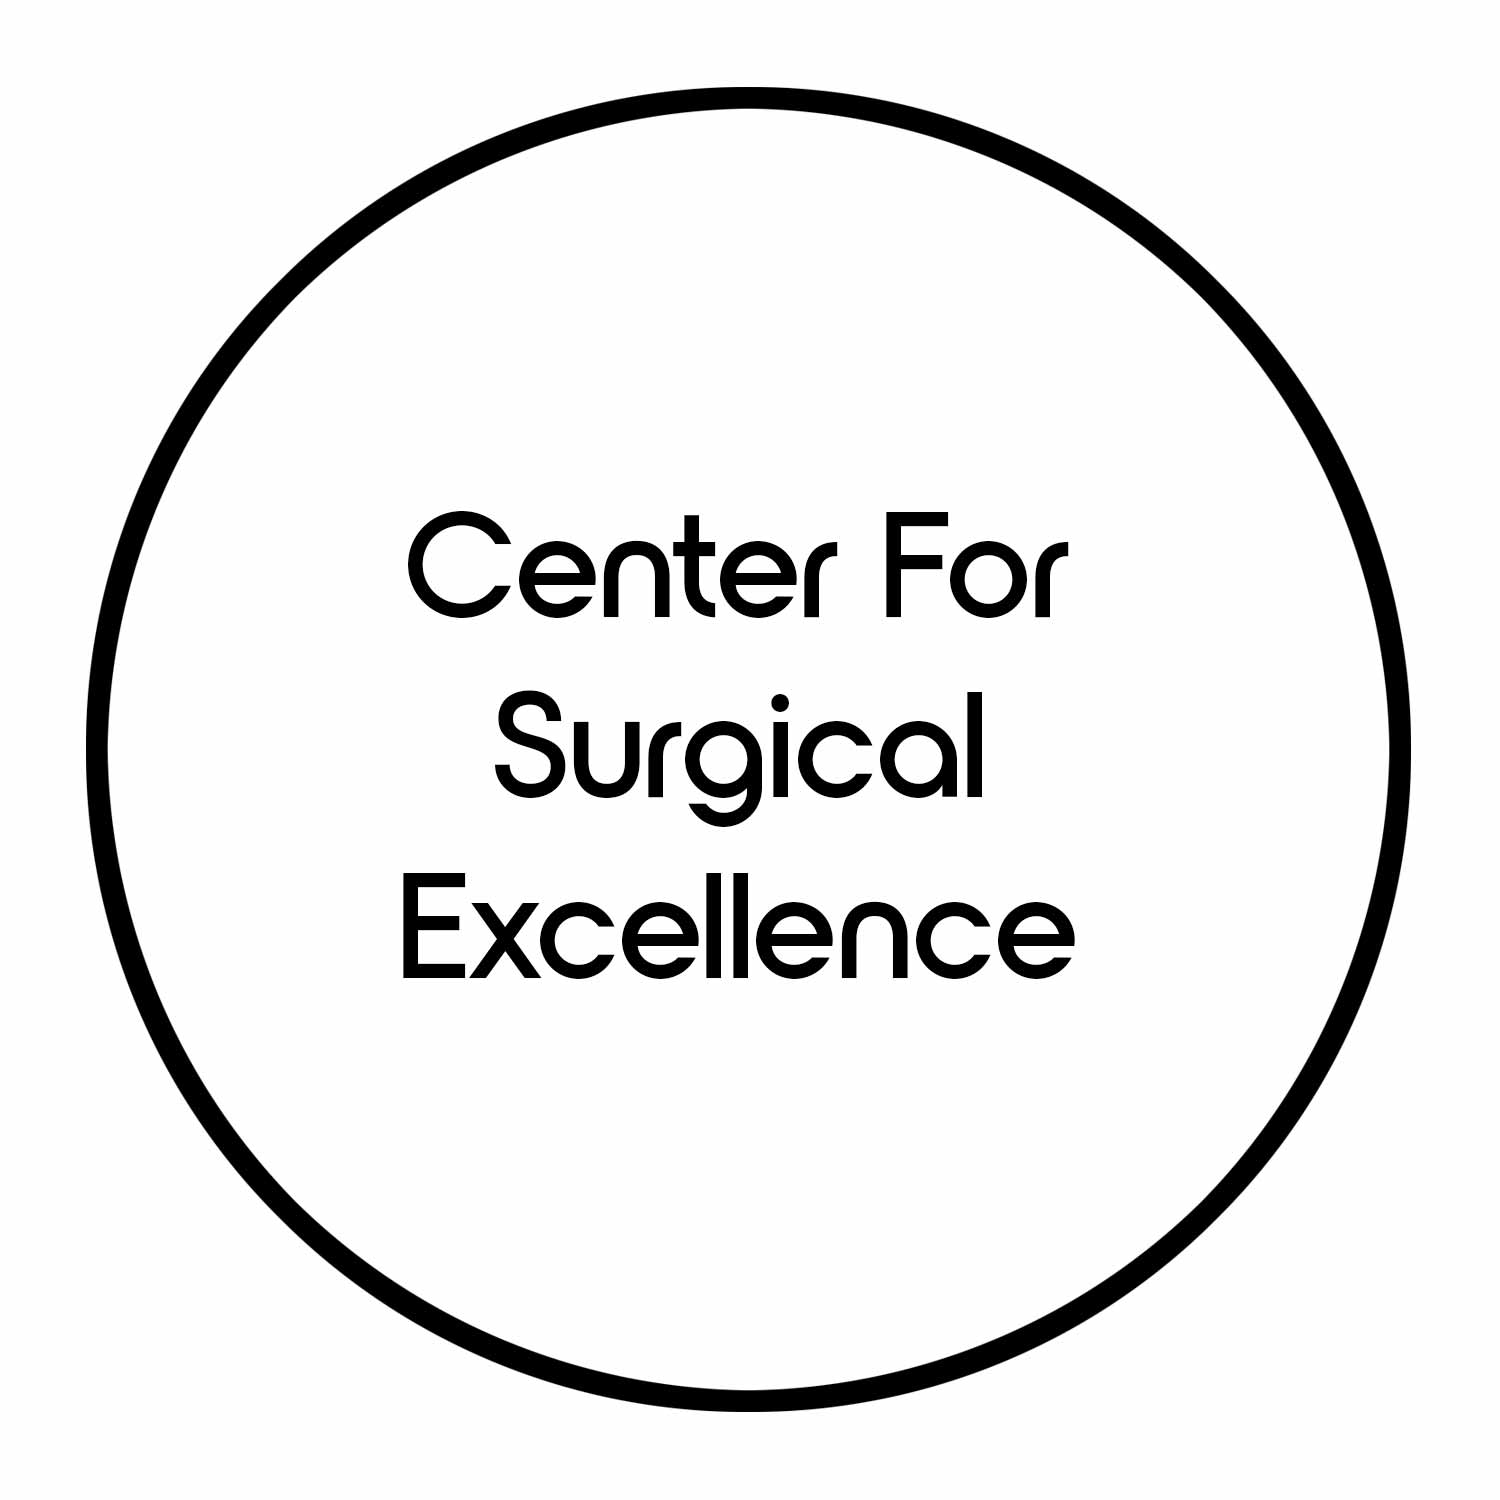 Center-forsurgical-excellence-icon.jpg